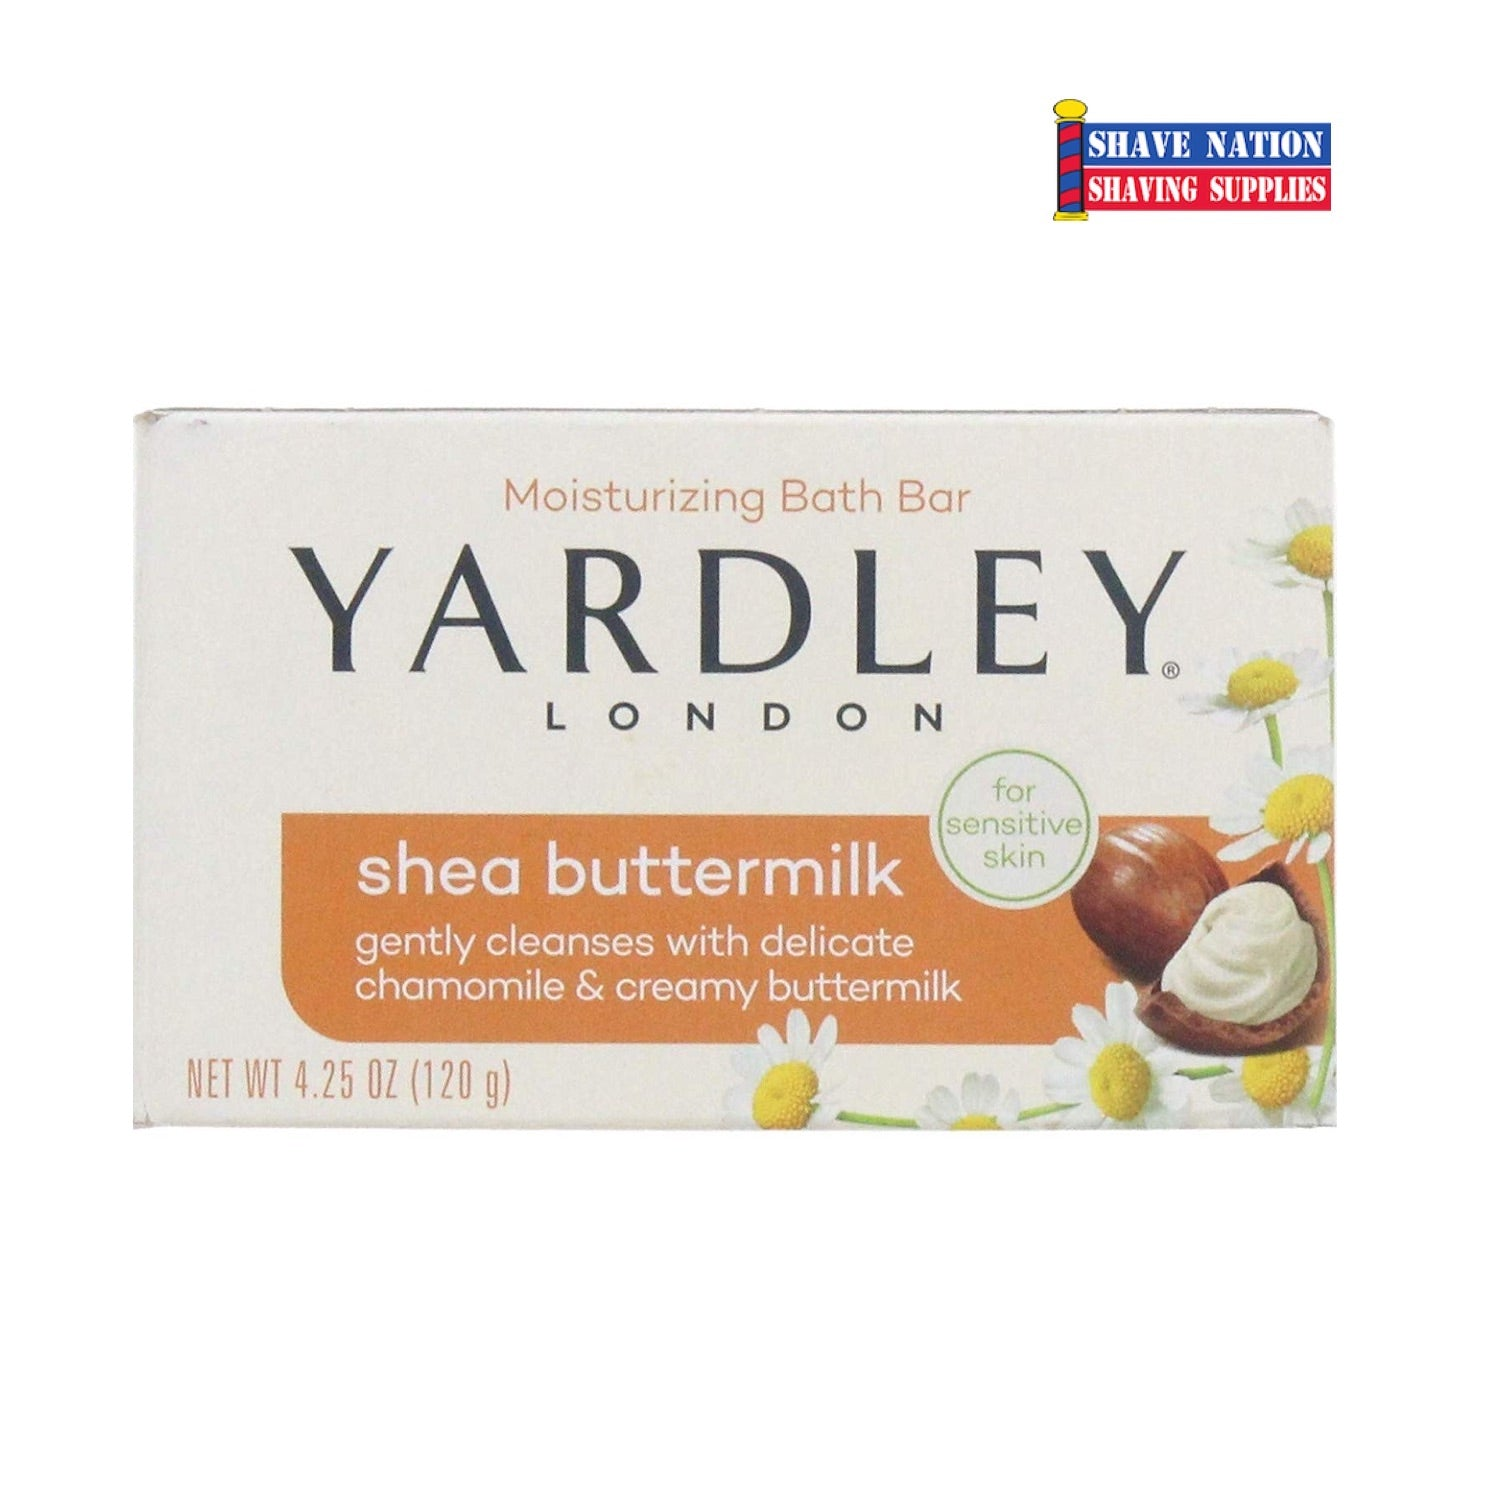 Yardley Shea Buttermilk Bar Soap